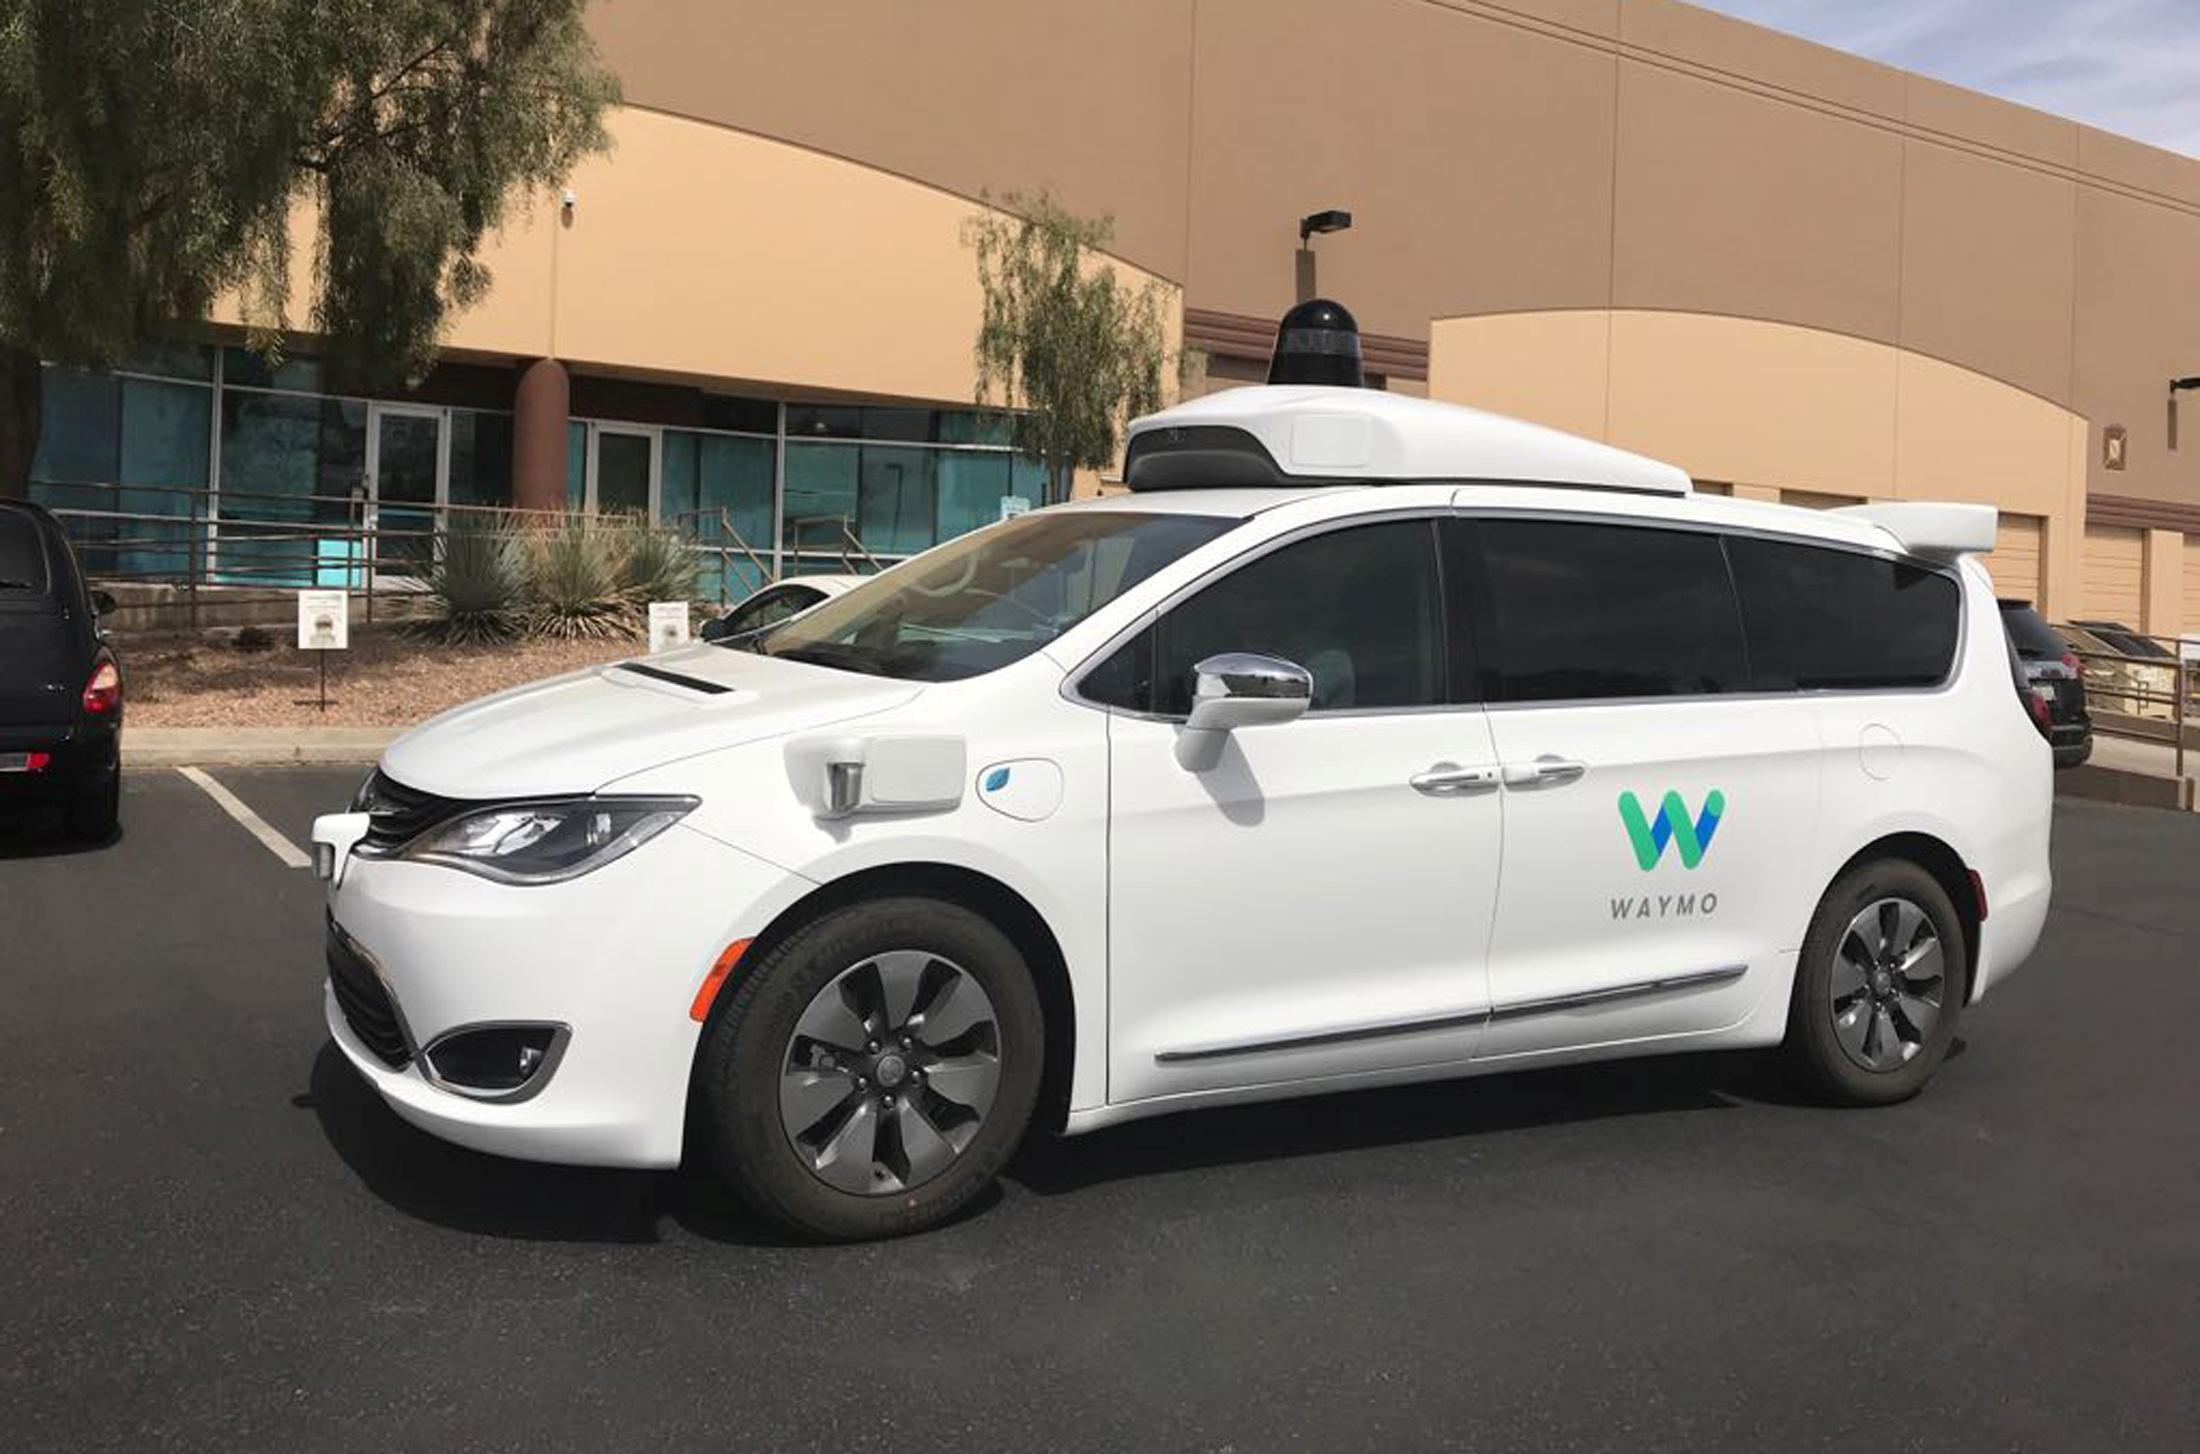 California proposes new rules for self-driving cars to pick up passengers